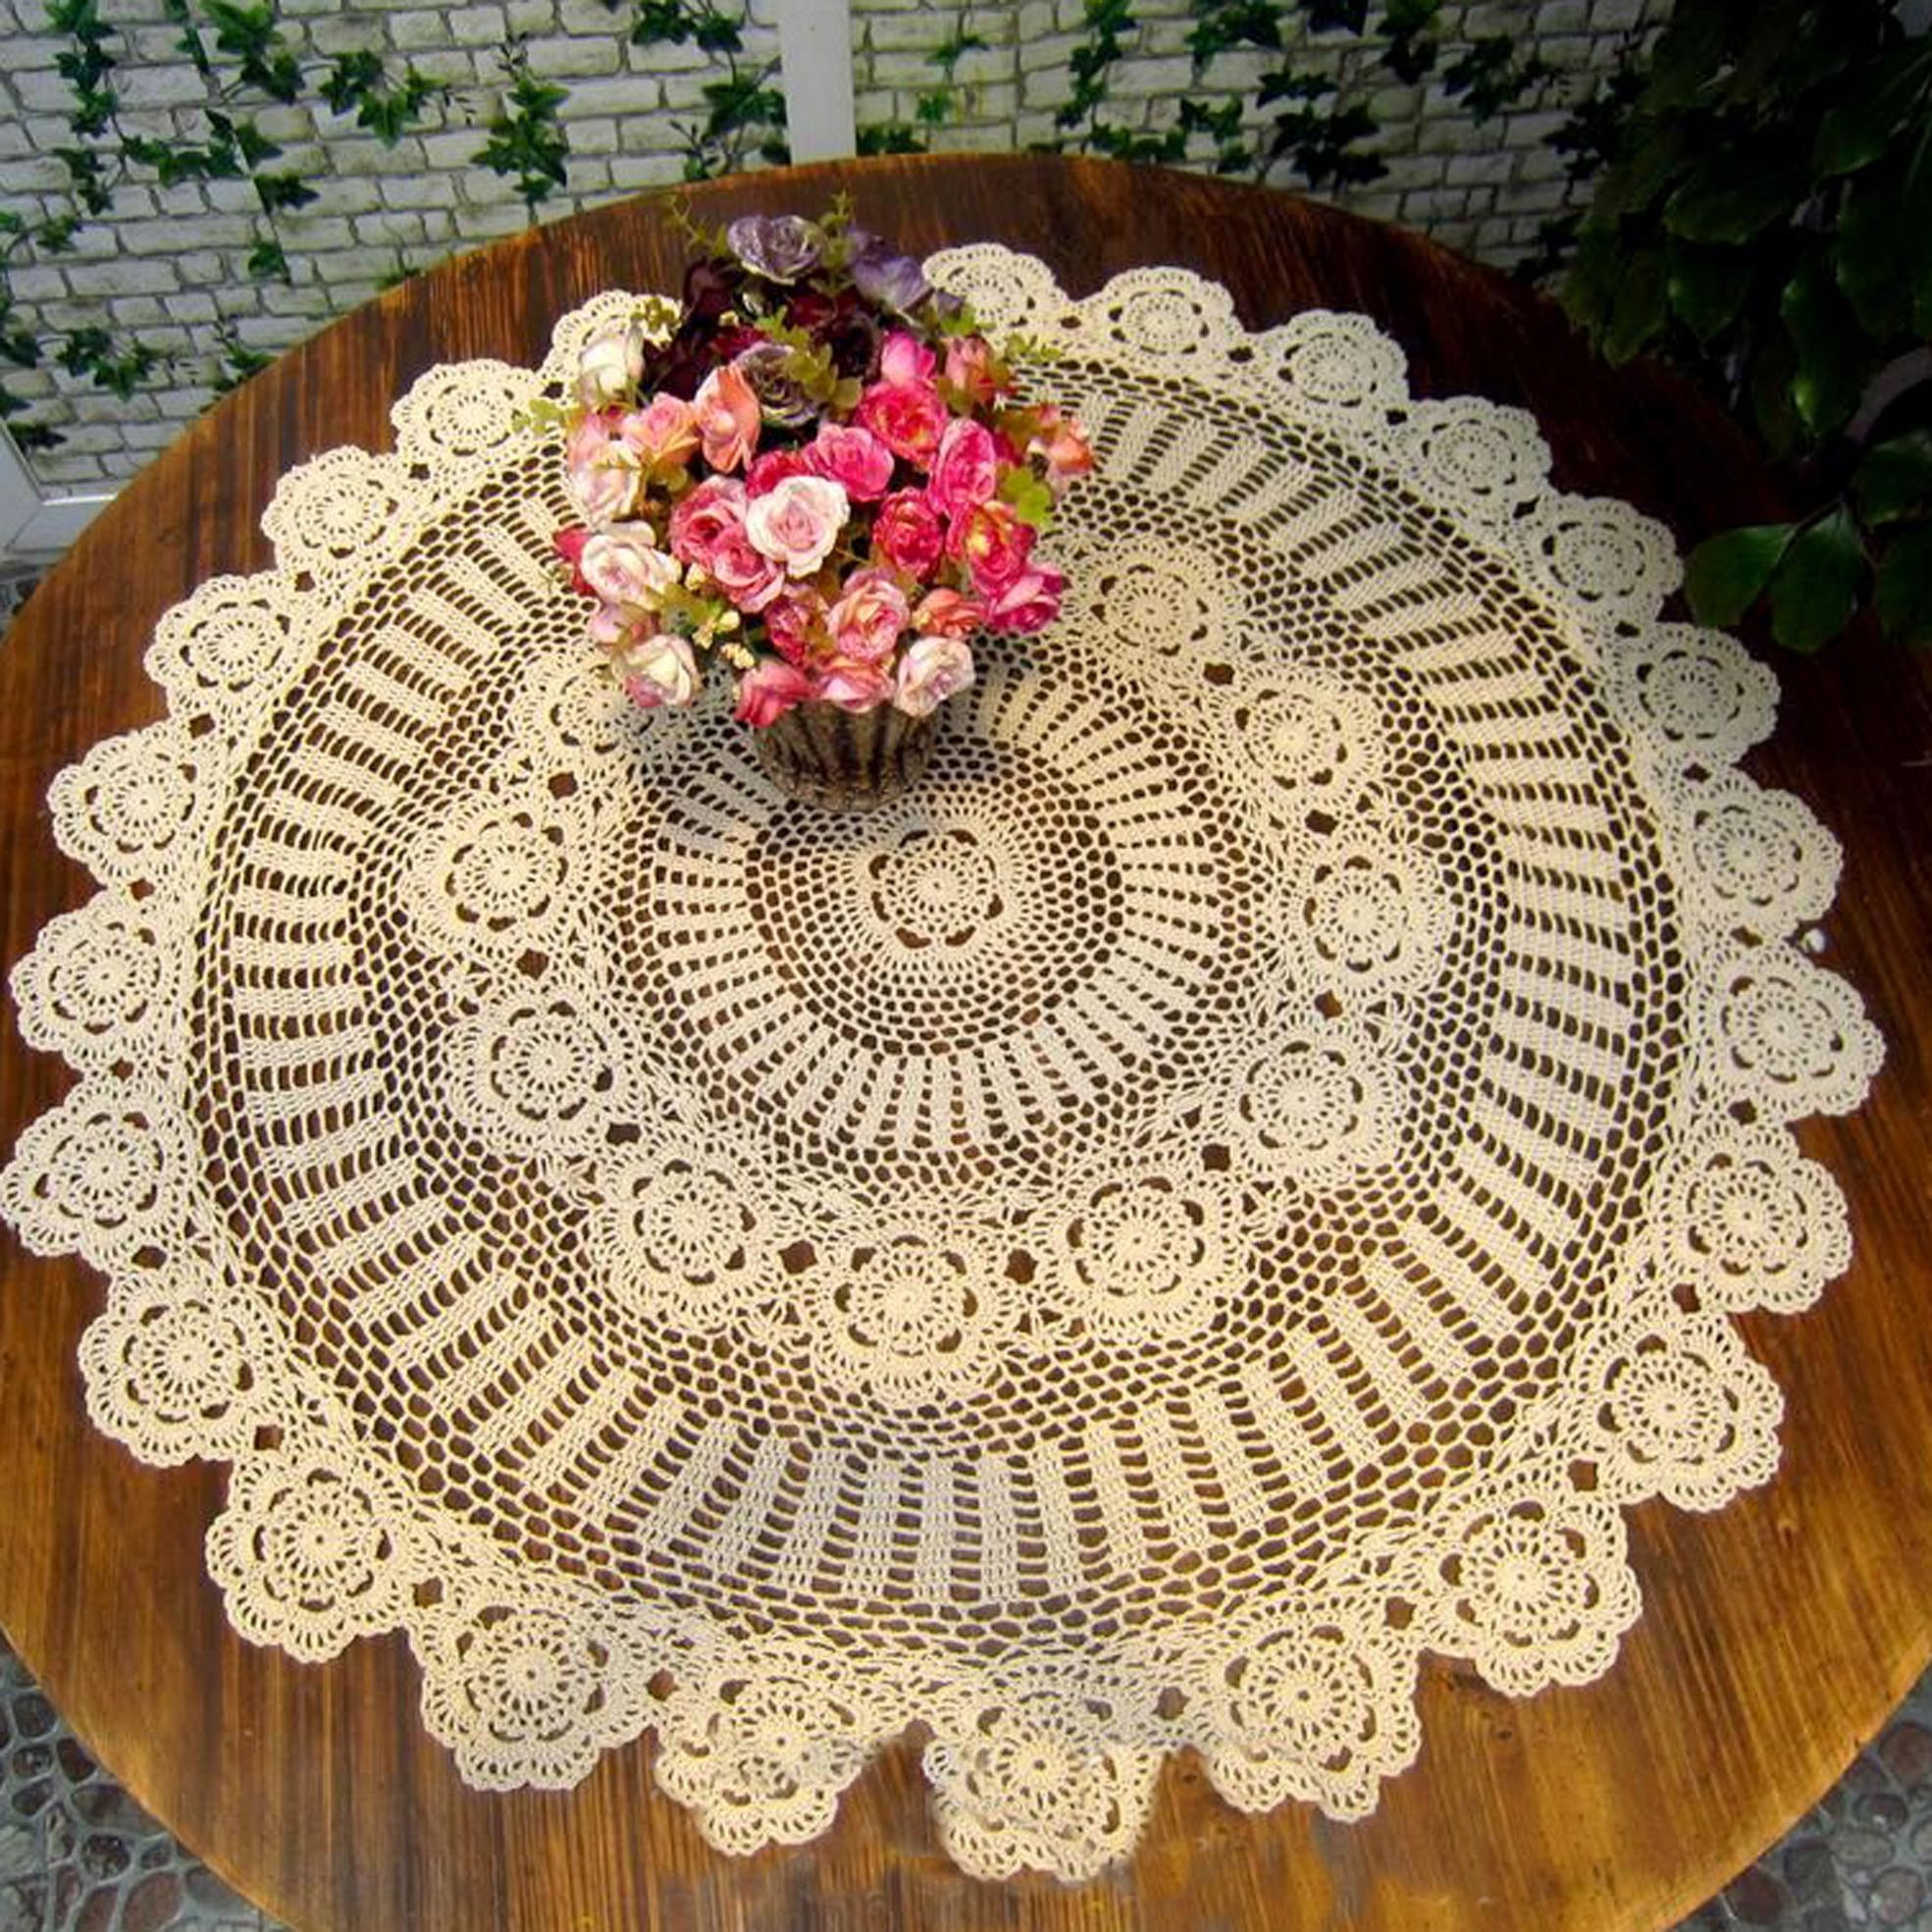 Crochet Round Tablecloths New White Cotton Crochet Tablecloth Of Unique 43 Pictures Crochet Round Tablecloths